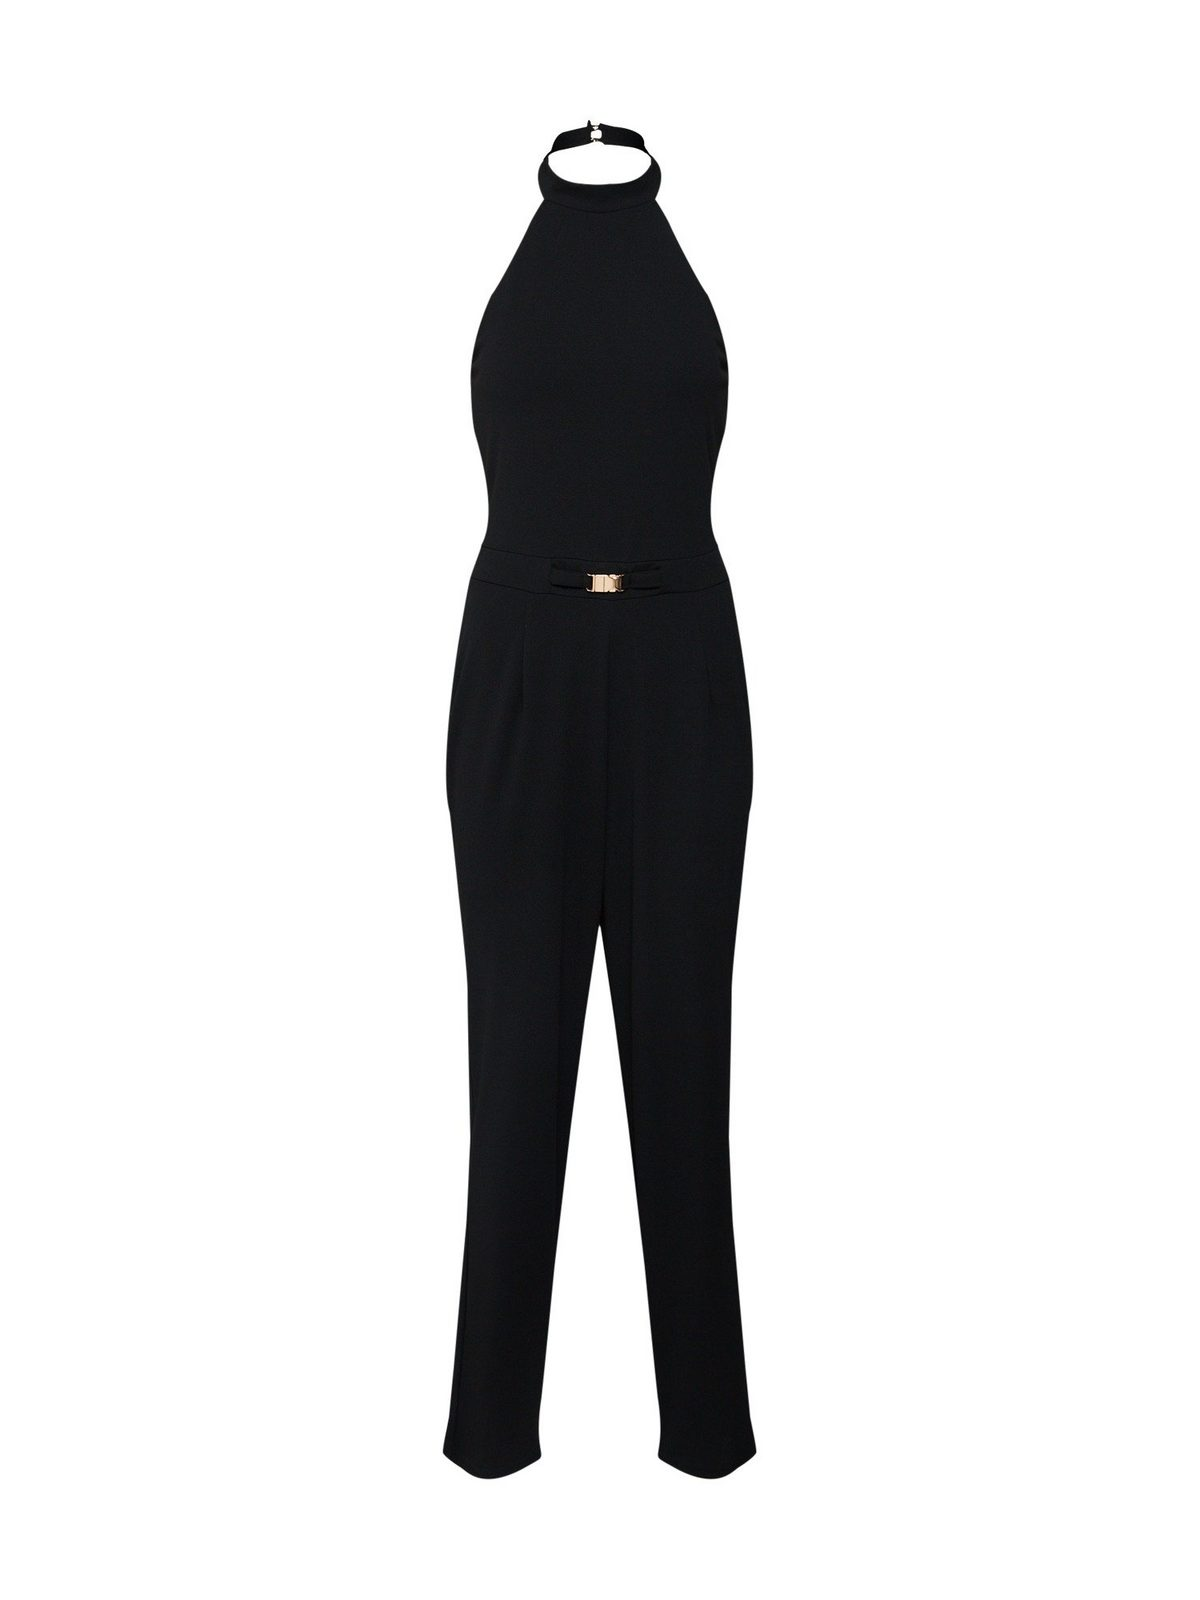 DOROTHY PERKINS Overall